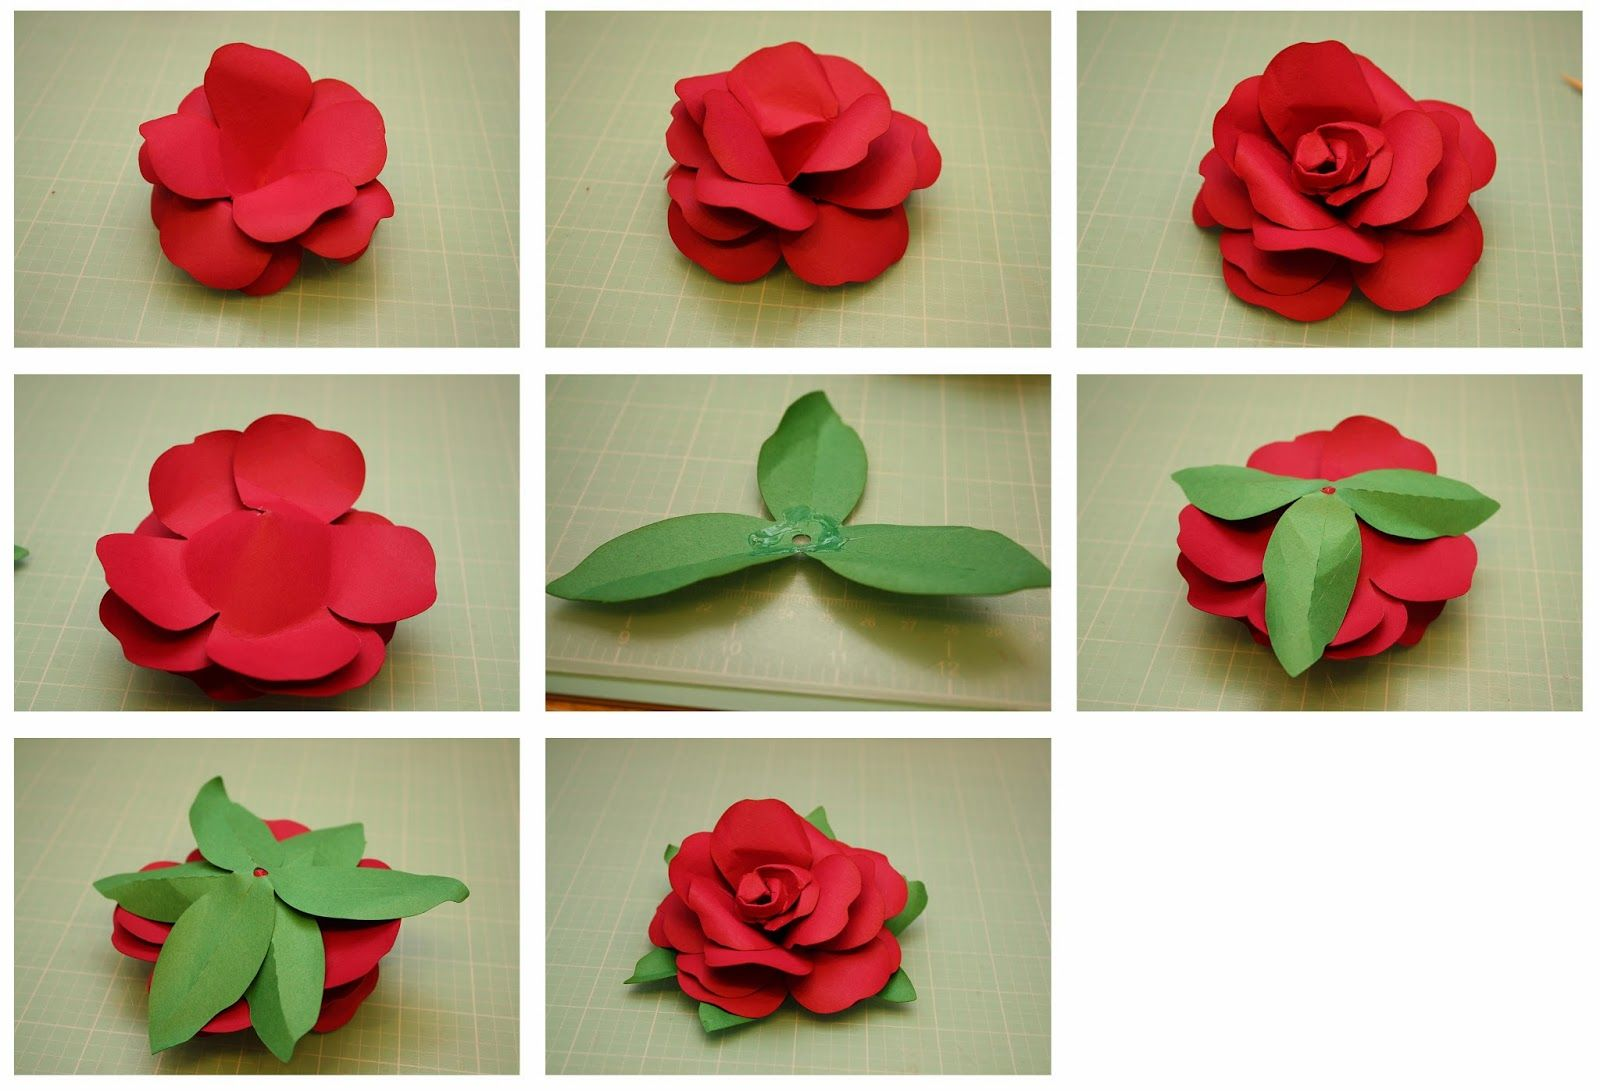 Over the next couple weeks i will be introducing you to my new 3d bits of paper rolled rose and easy to assemble rose paper flowers mightylinksfo